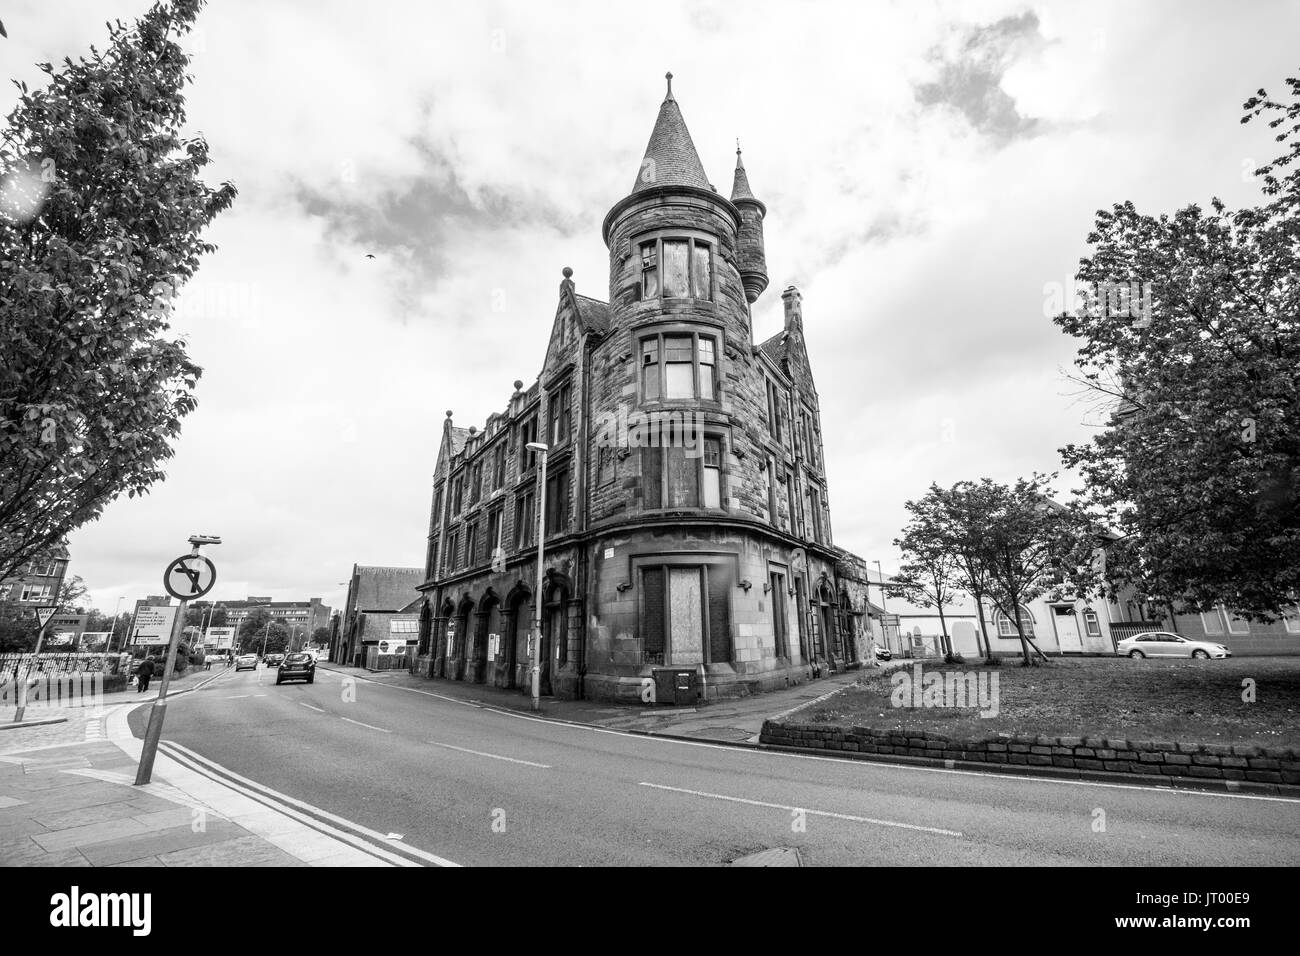 Abandoned Old Fire Station Gordon Street Paisley now under renovation - Stock Image